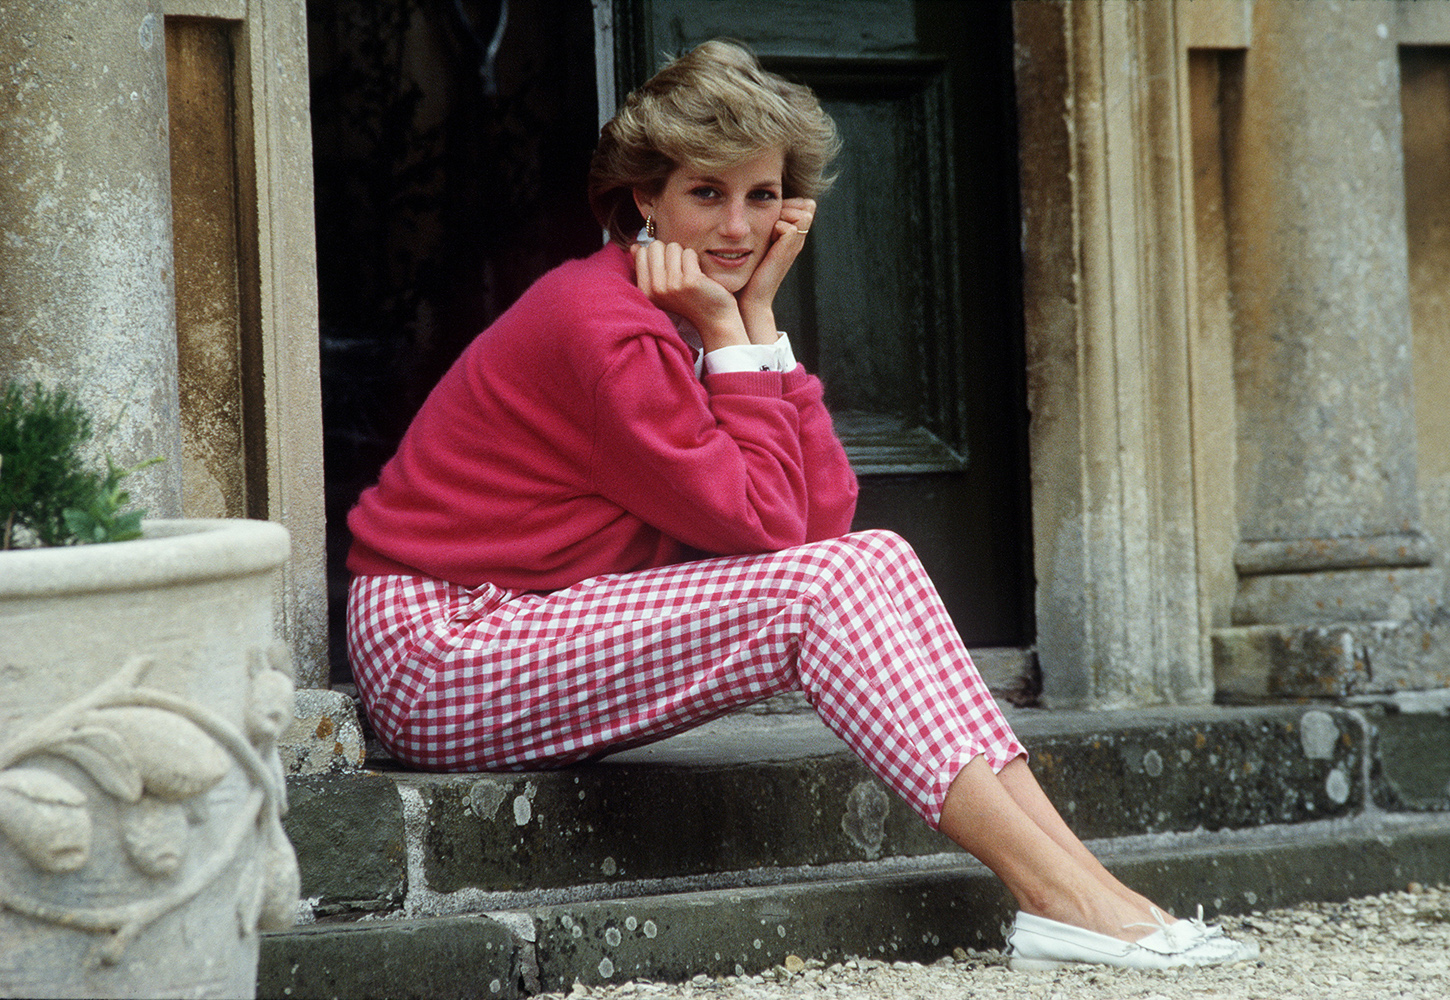 The people's princess: Diana of Wales